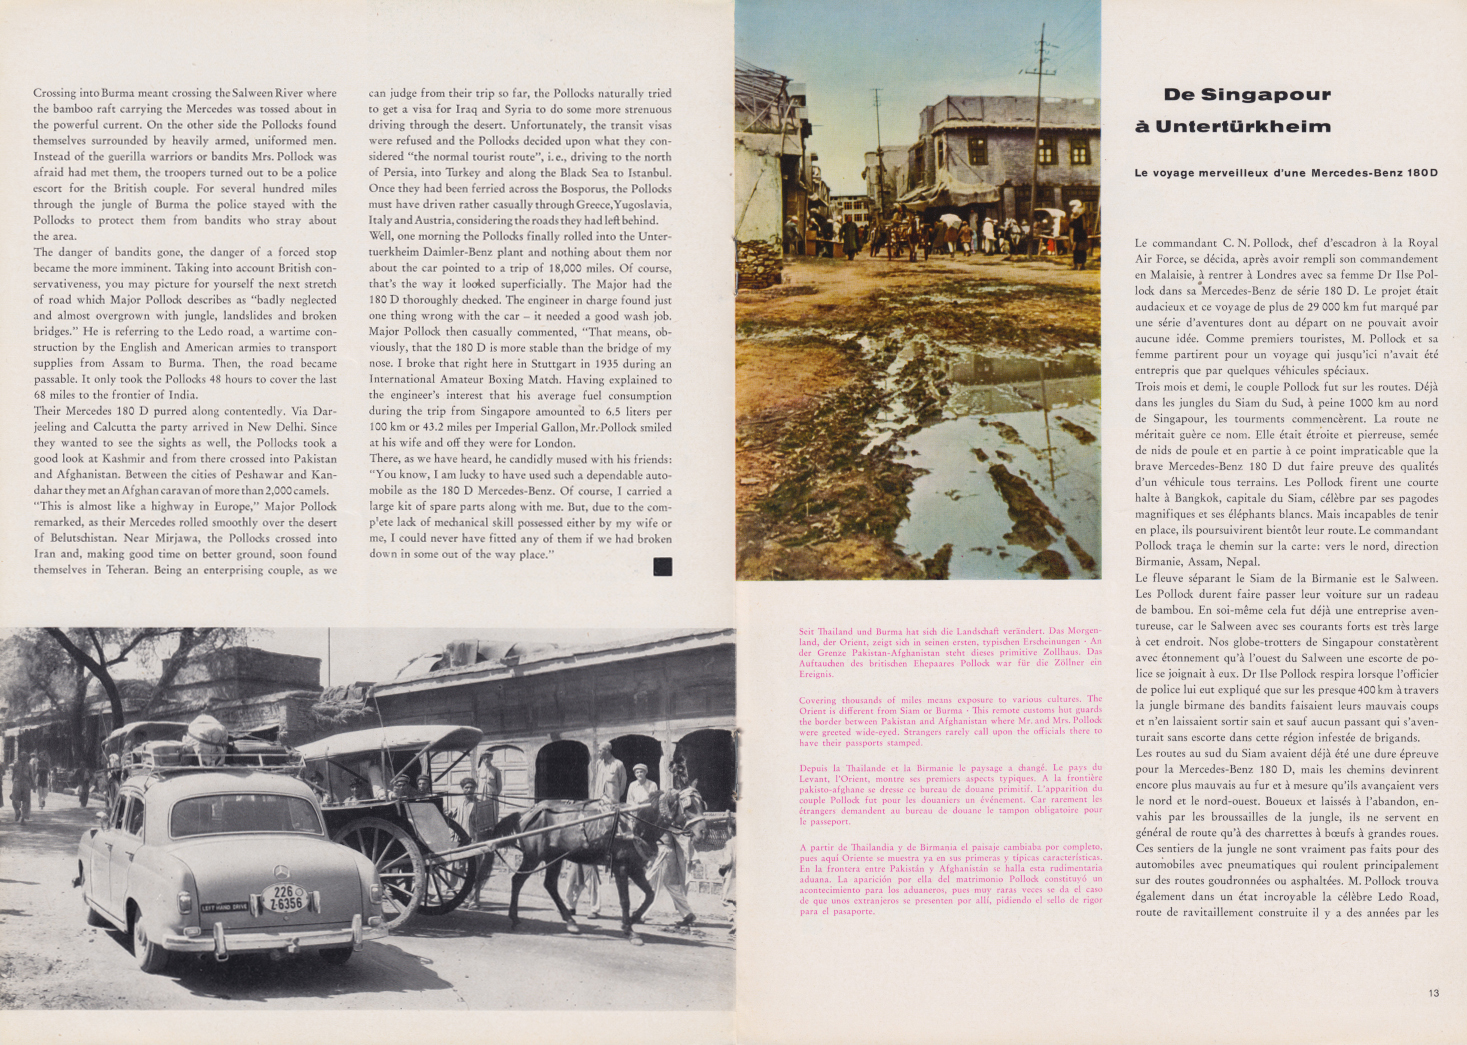 (REVISTA): Periódico In aller welt n.º 32 - Mercedes-Benz no mundo - 1959 - multilingue 007